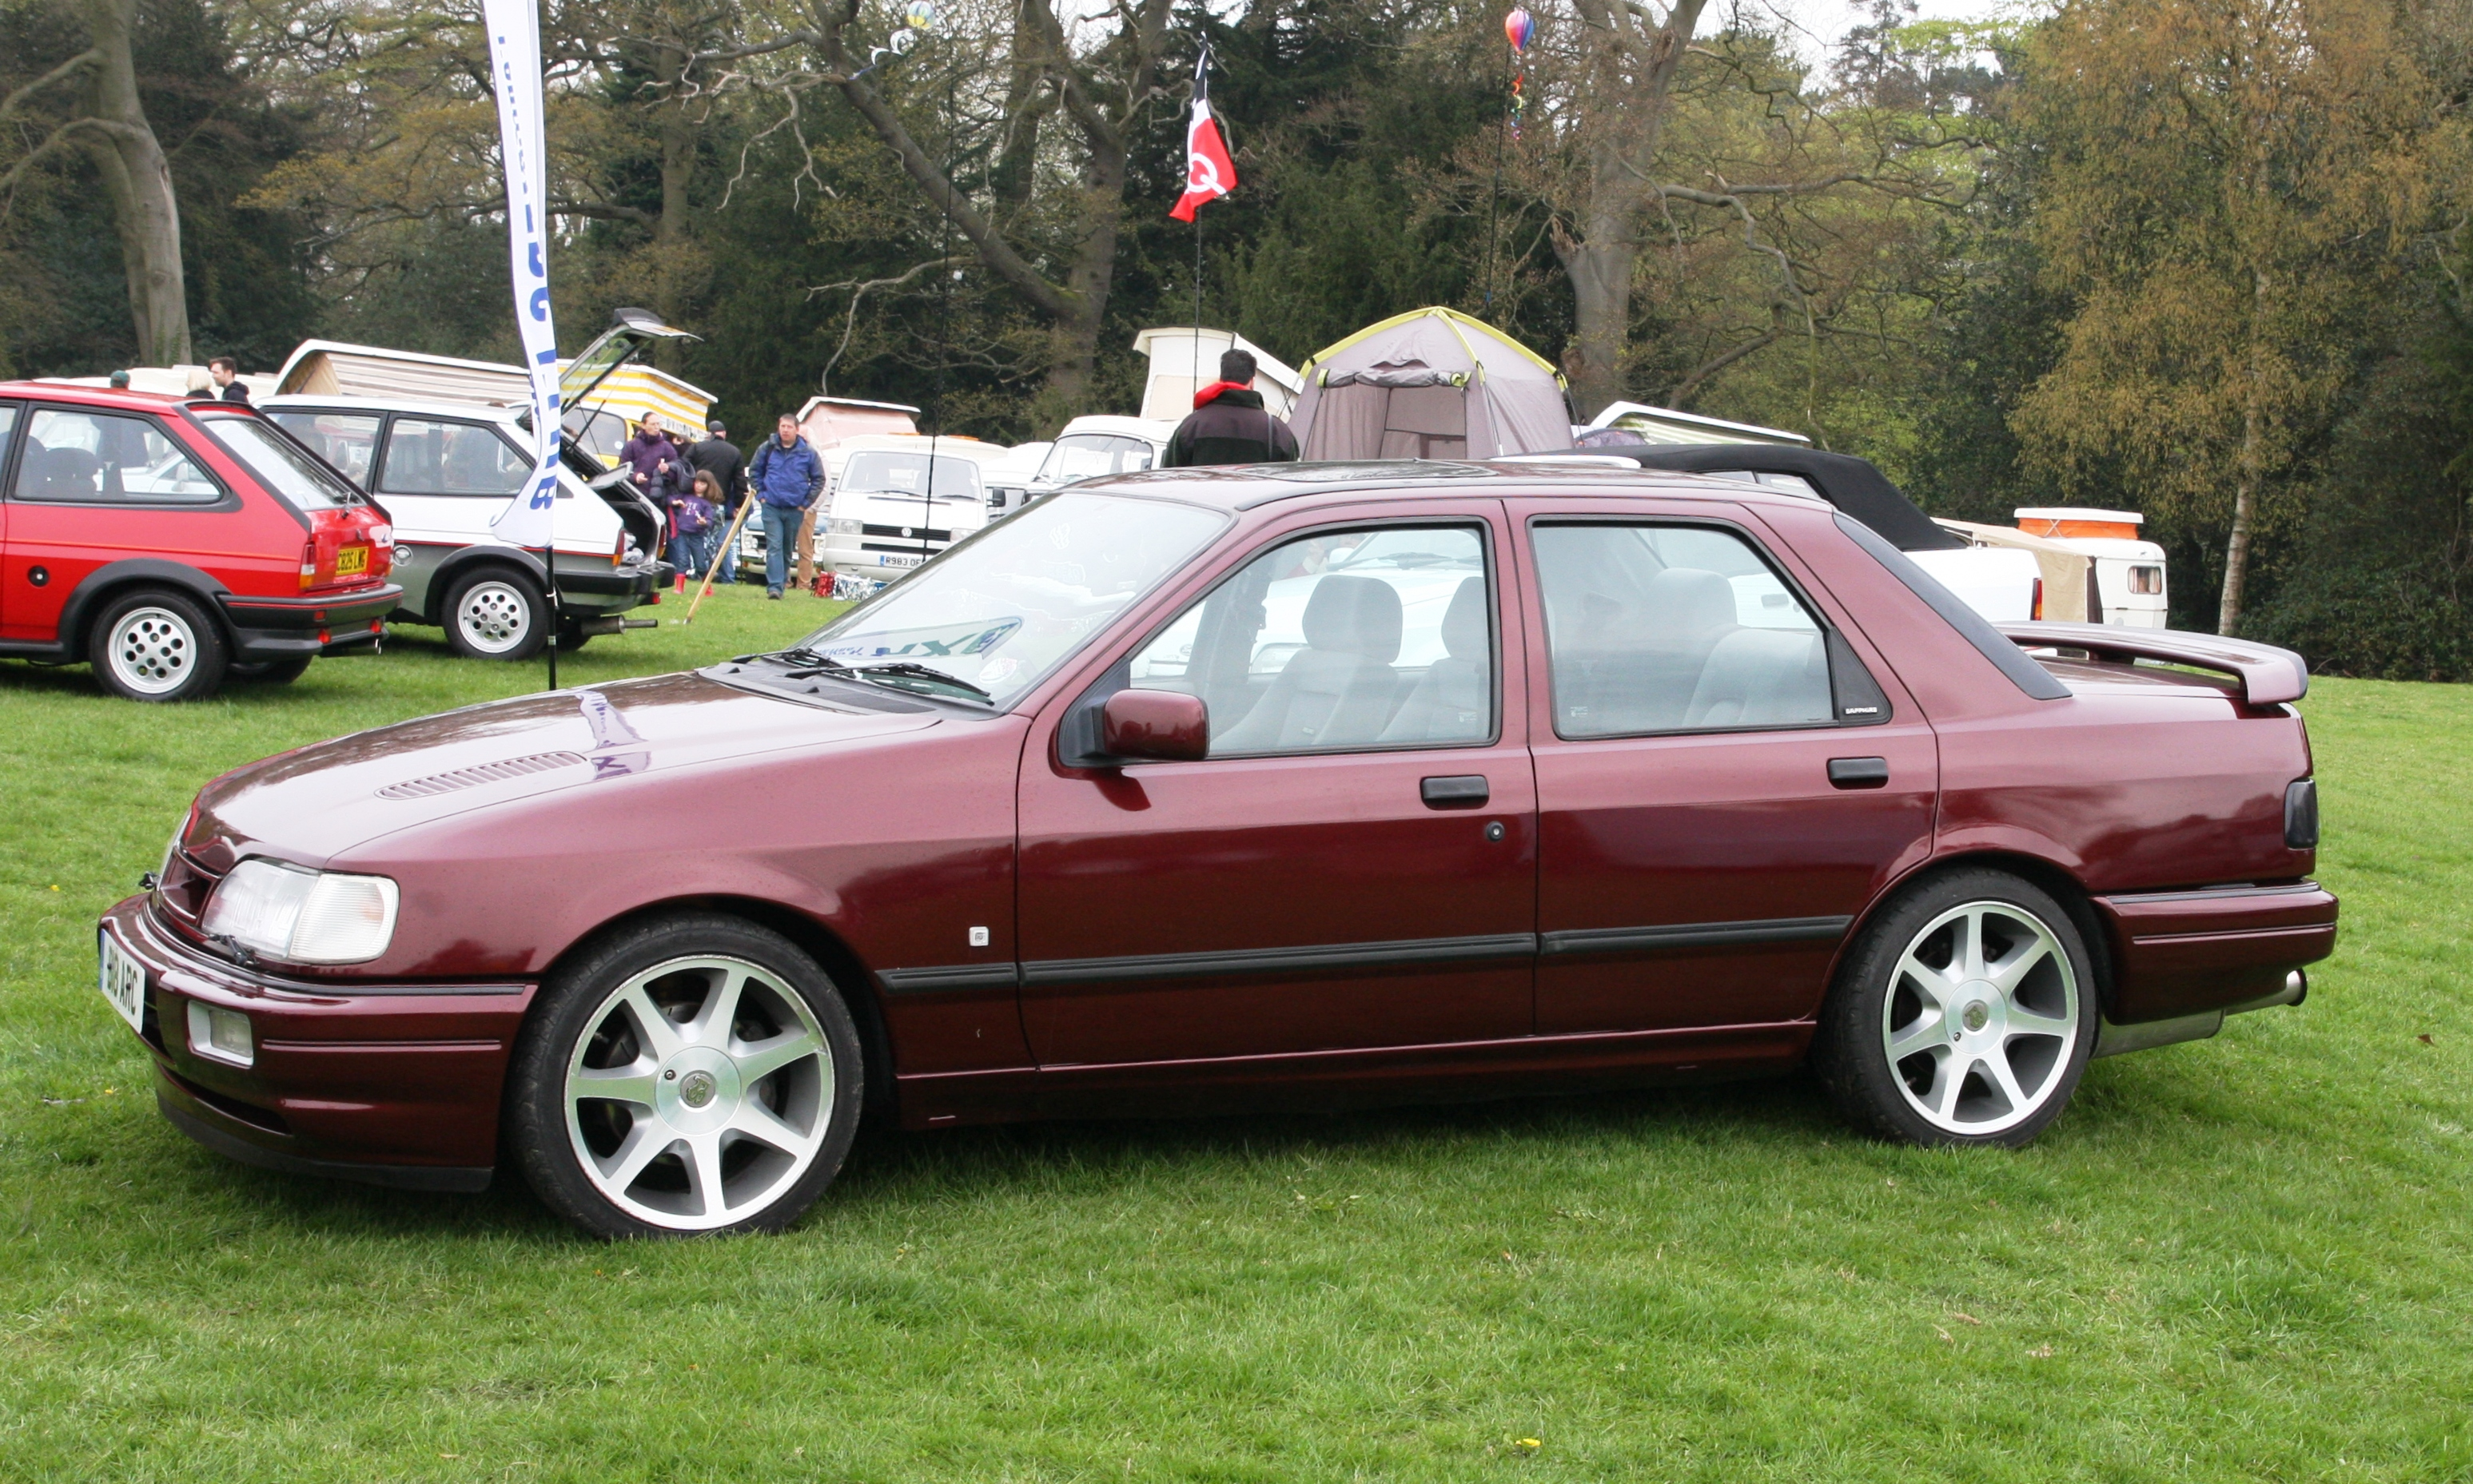 Ford Sierra Sapphire RS Cosworth 4x4 group A (1990) - Racing